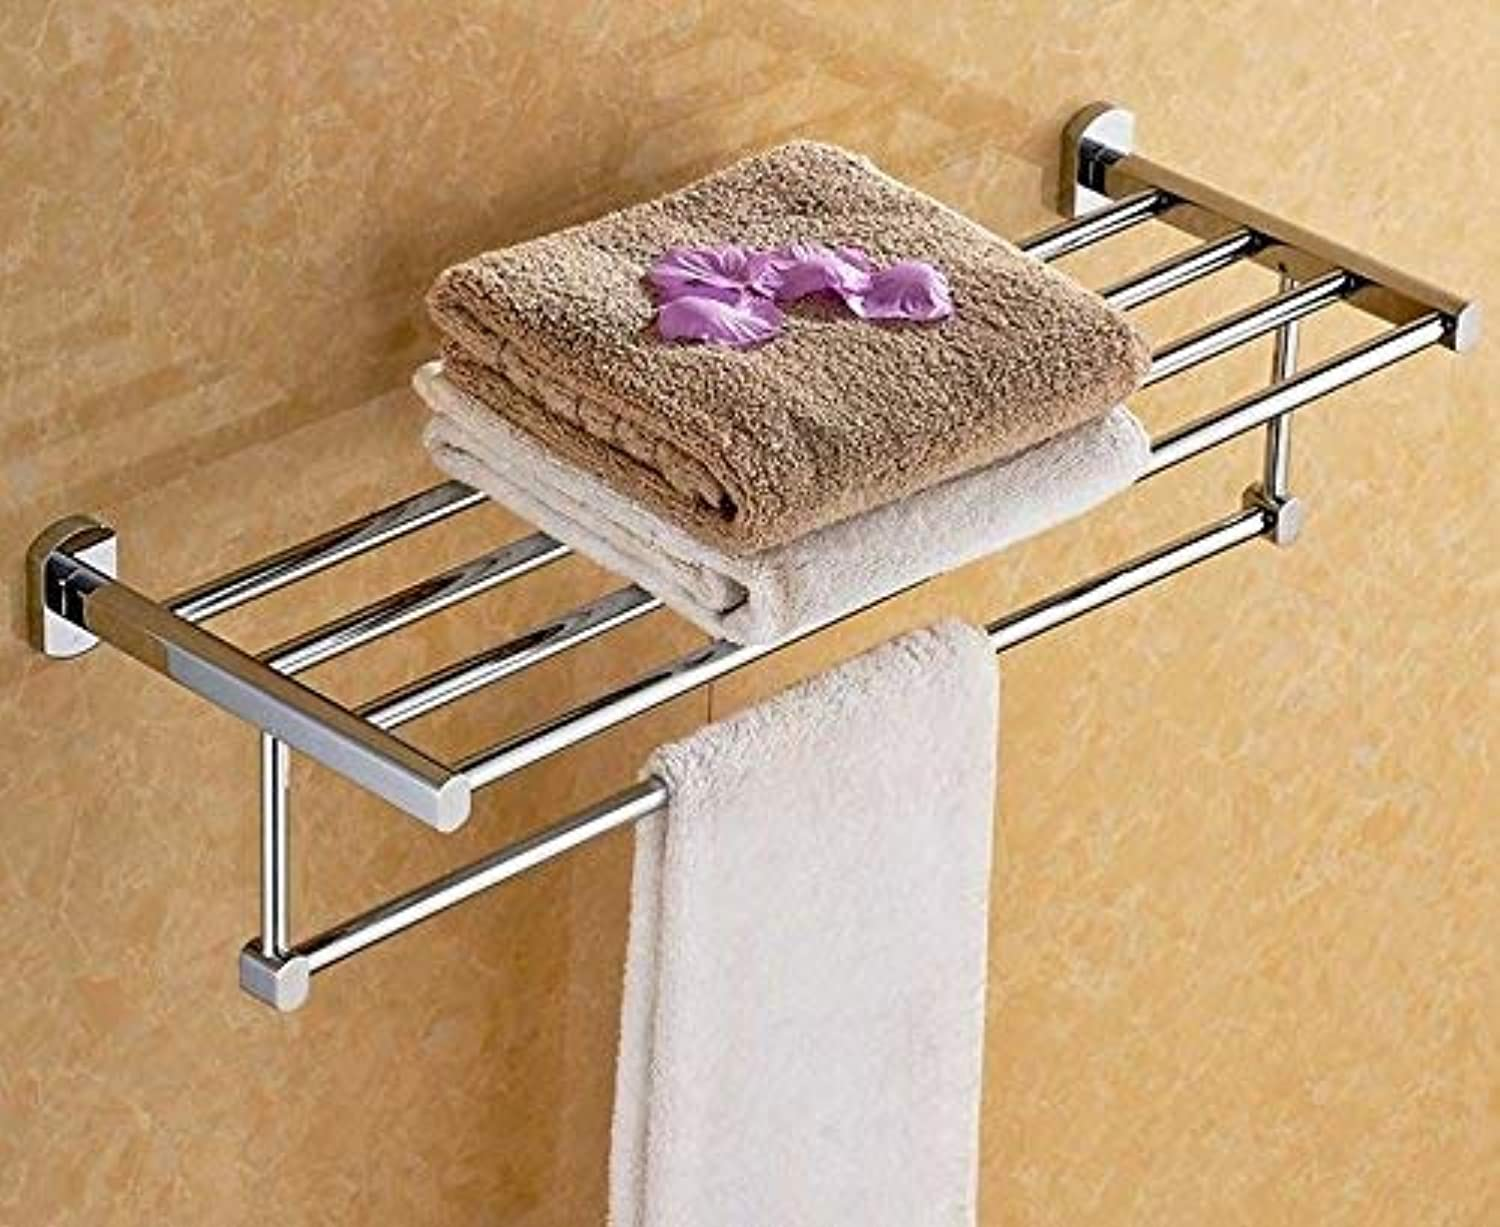 TOWEL RACK HOME Bathroom Sink Basin Tap Brass Mixer Tap Washroom Mixer Faucet The copper kitchen faucet hot and cold redary spring turn the faucet plating Kitchen Sink Ta